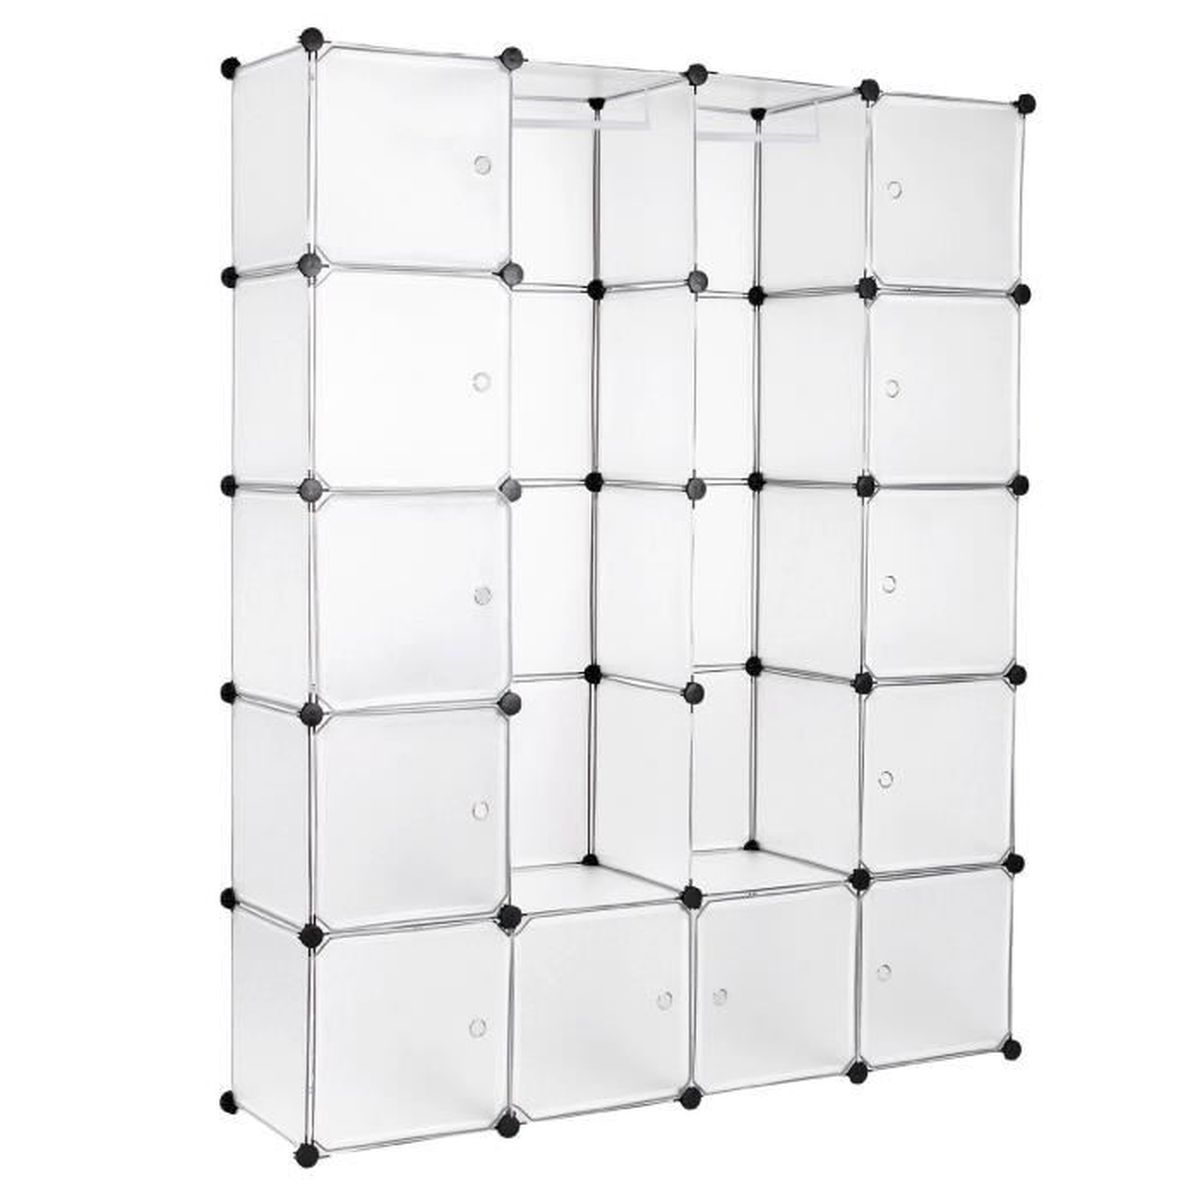 diy armoire penderie cubes tag re de rangement modulables plastiques cadre en m tal blanc 180 x. Black Bedroom Furniture Sets. Home Design Ideas